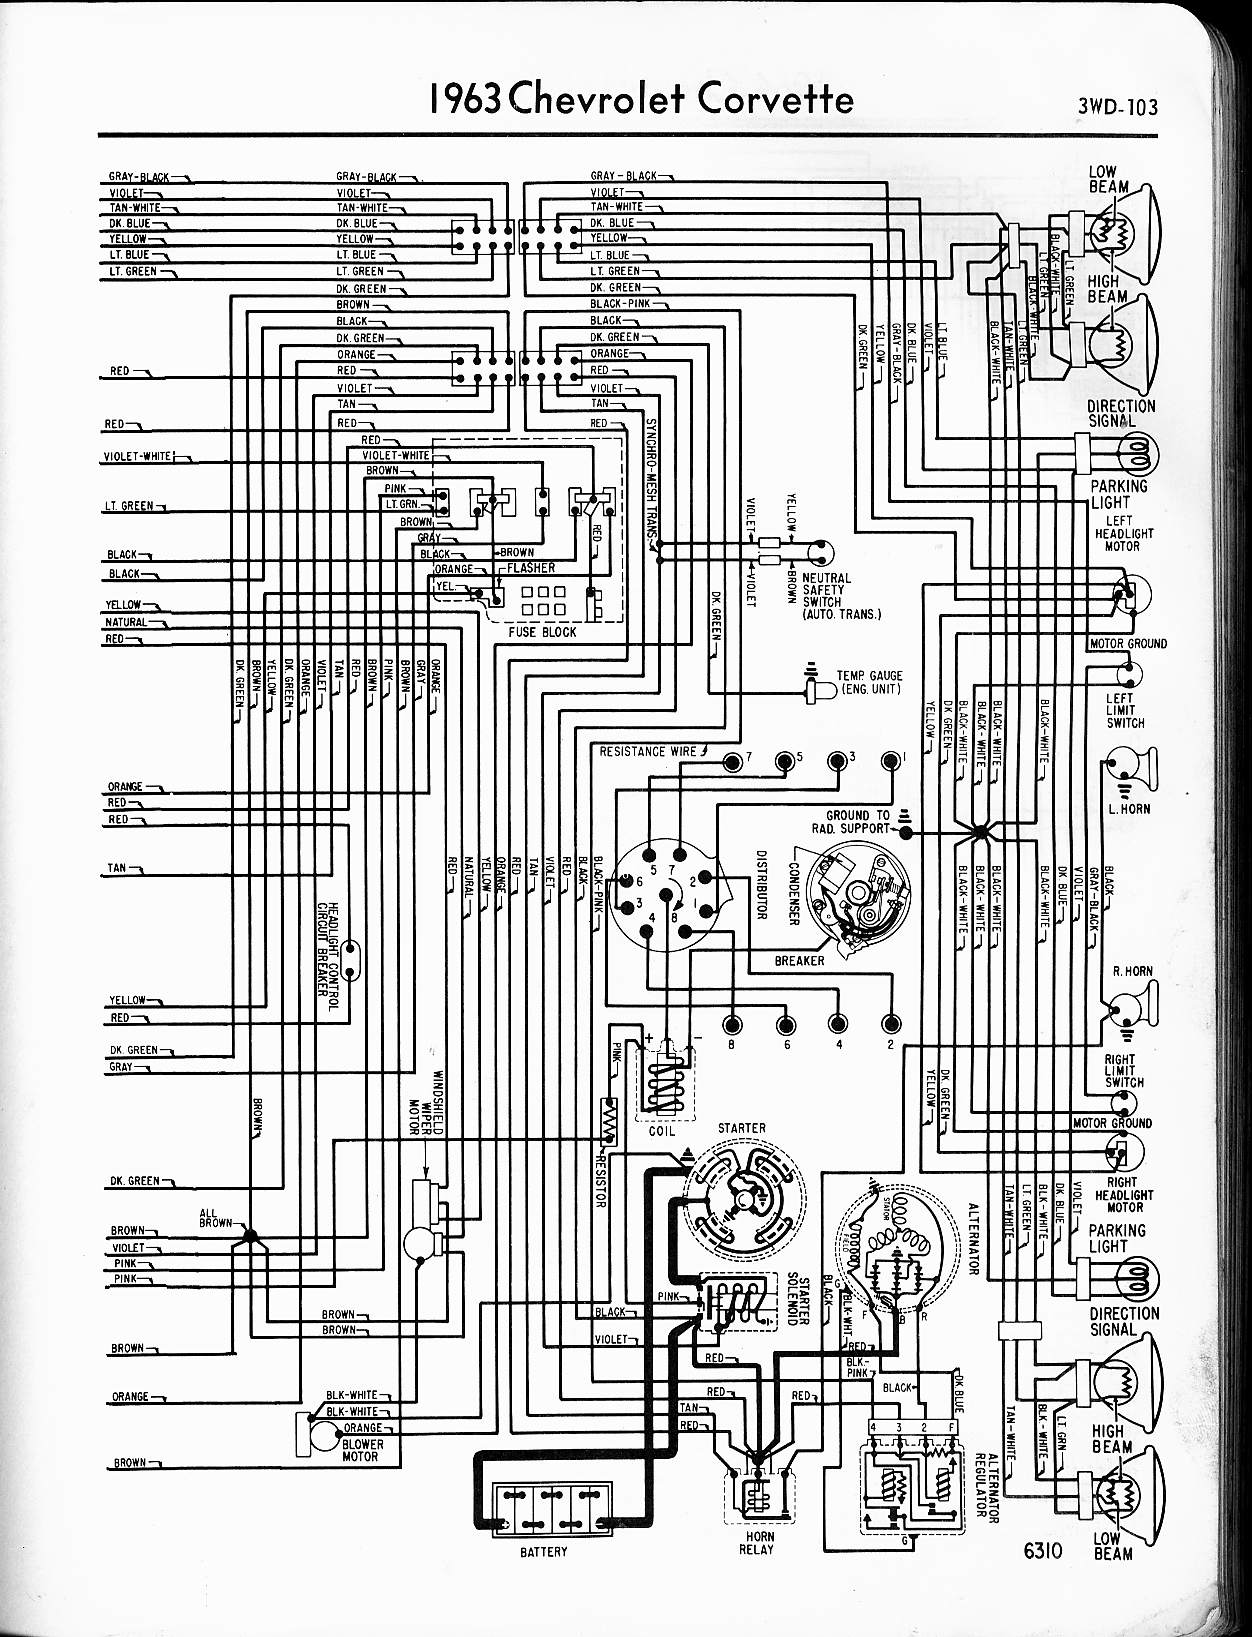 1974 Corvette Wiring Diagram | Wiring Diagram on 1984 corvette wiring schematic, 1967 corvette wiring schematic, 1968 corvette wiring schematic, 1980 corvette wiring schematic, 2001 corvette wiring schematic, 1982 corvette wiring schematic, 1979 corvette wiring schematic, 1985 corvette wiring schematic, 1987 corvette wiring schematic, 1981 corvette wiring schematic, 1963 corvette wiring schematic, 1961 corvette wiring schematic, 1966 corvette wiring schematic, 1973 corvette wiring schematic, 1969 corvette wiring schematic, 68 corvette wiring schematic, 1978 corvette wiring schematic, 1976 corvette wiring schematic, 1972 corvette wiring schematic, 1975 corvette wiring schematic,